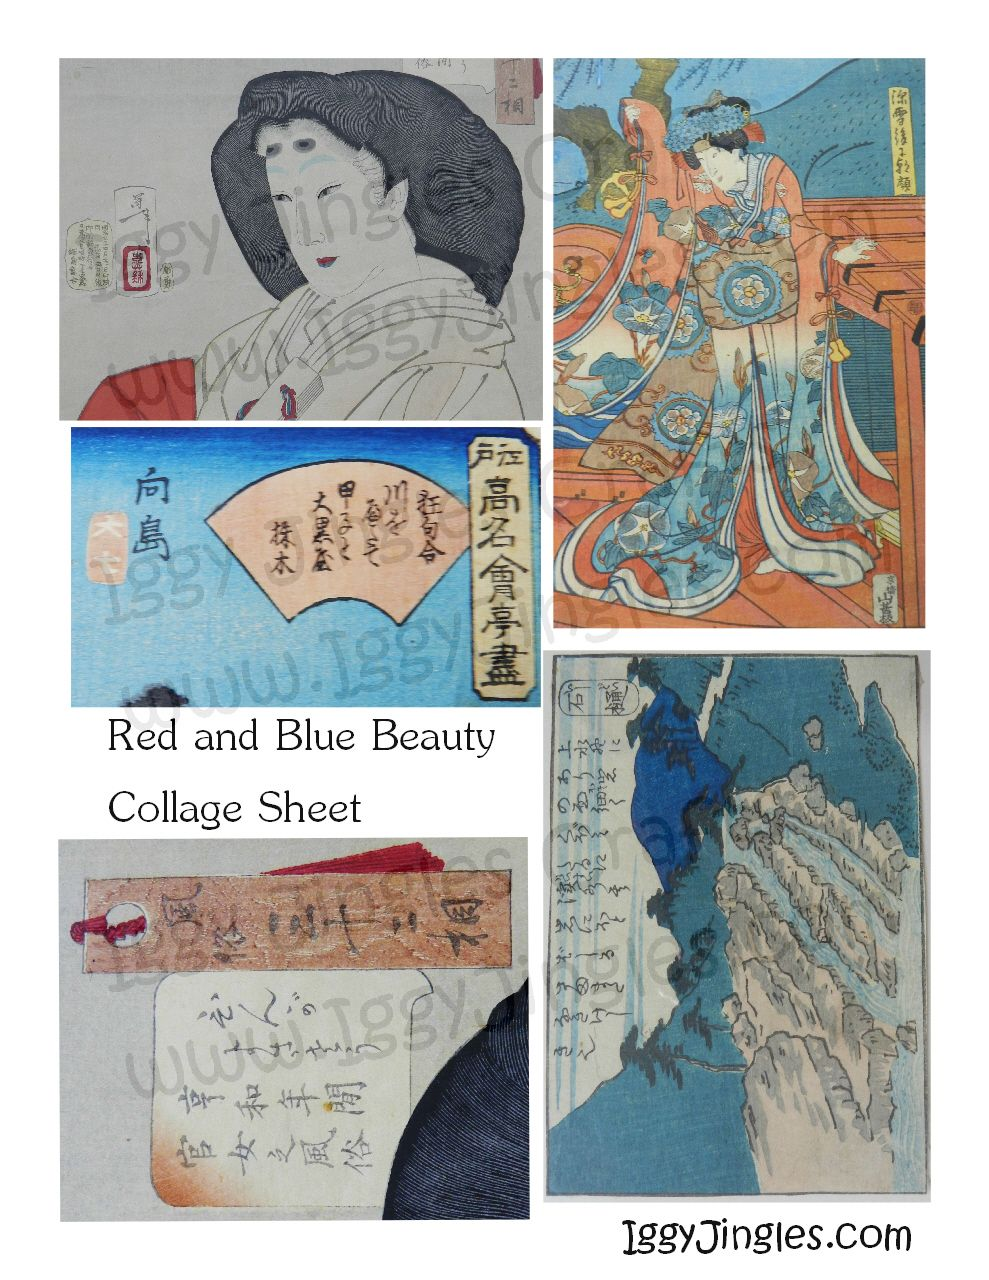 Red and Blue Beauty Asian Image Collage Sheet